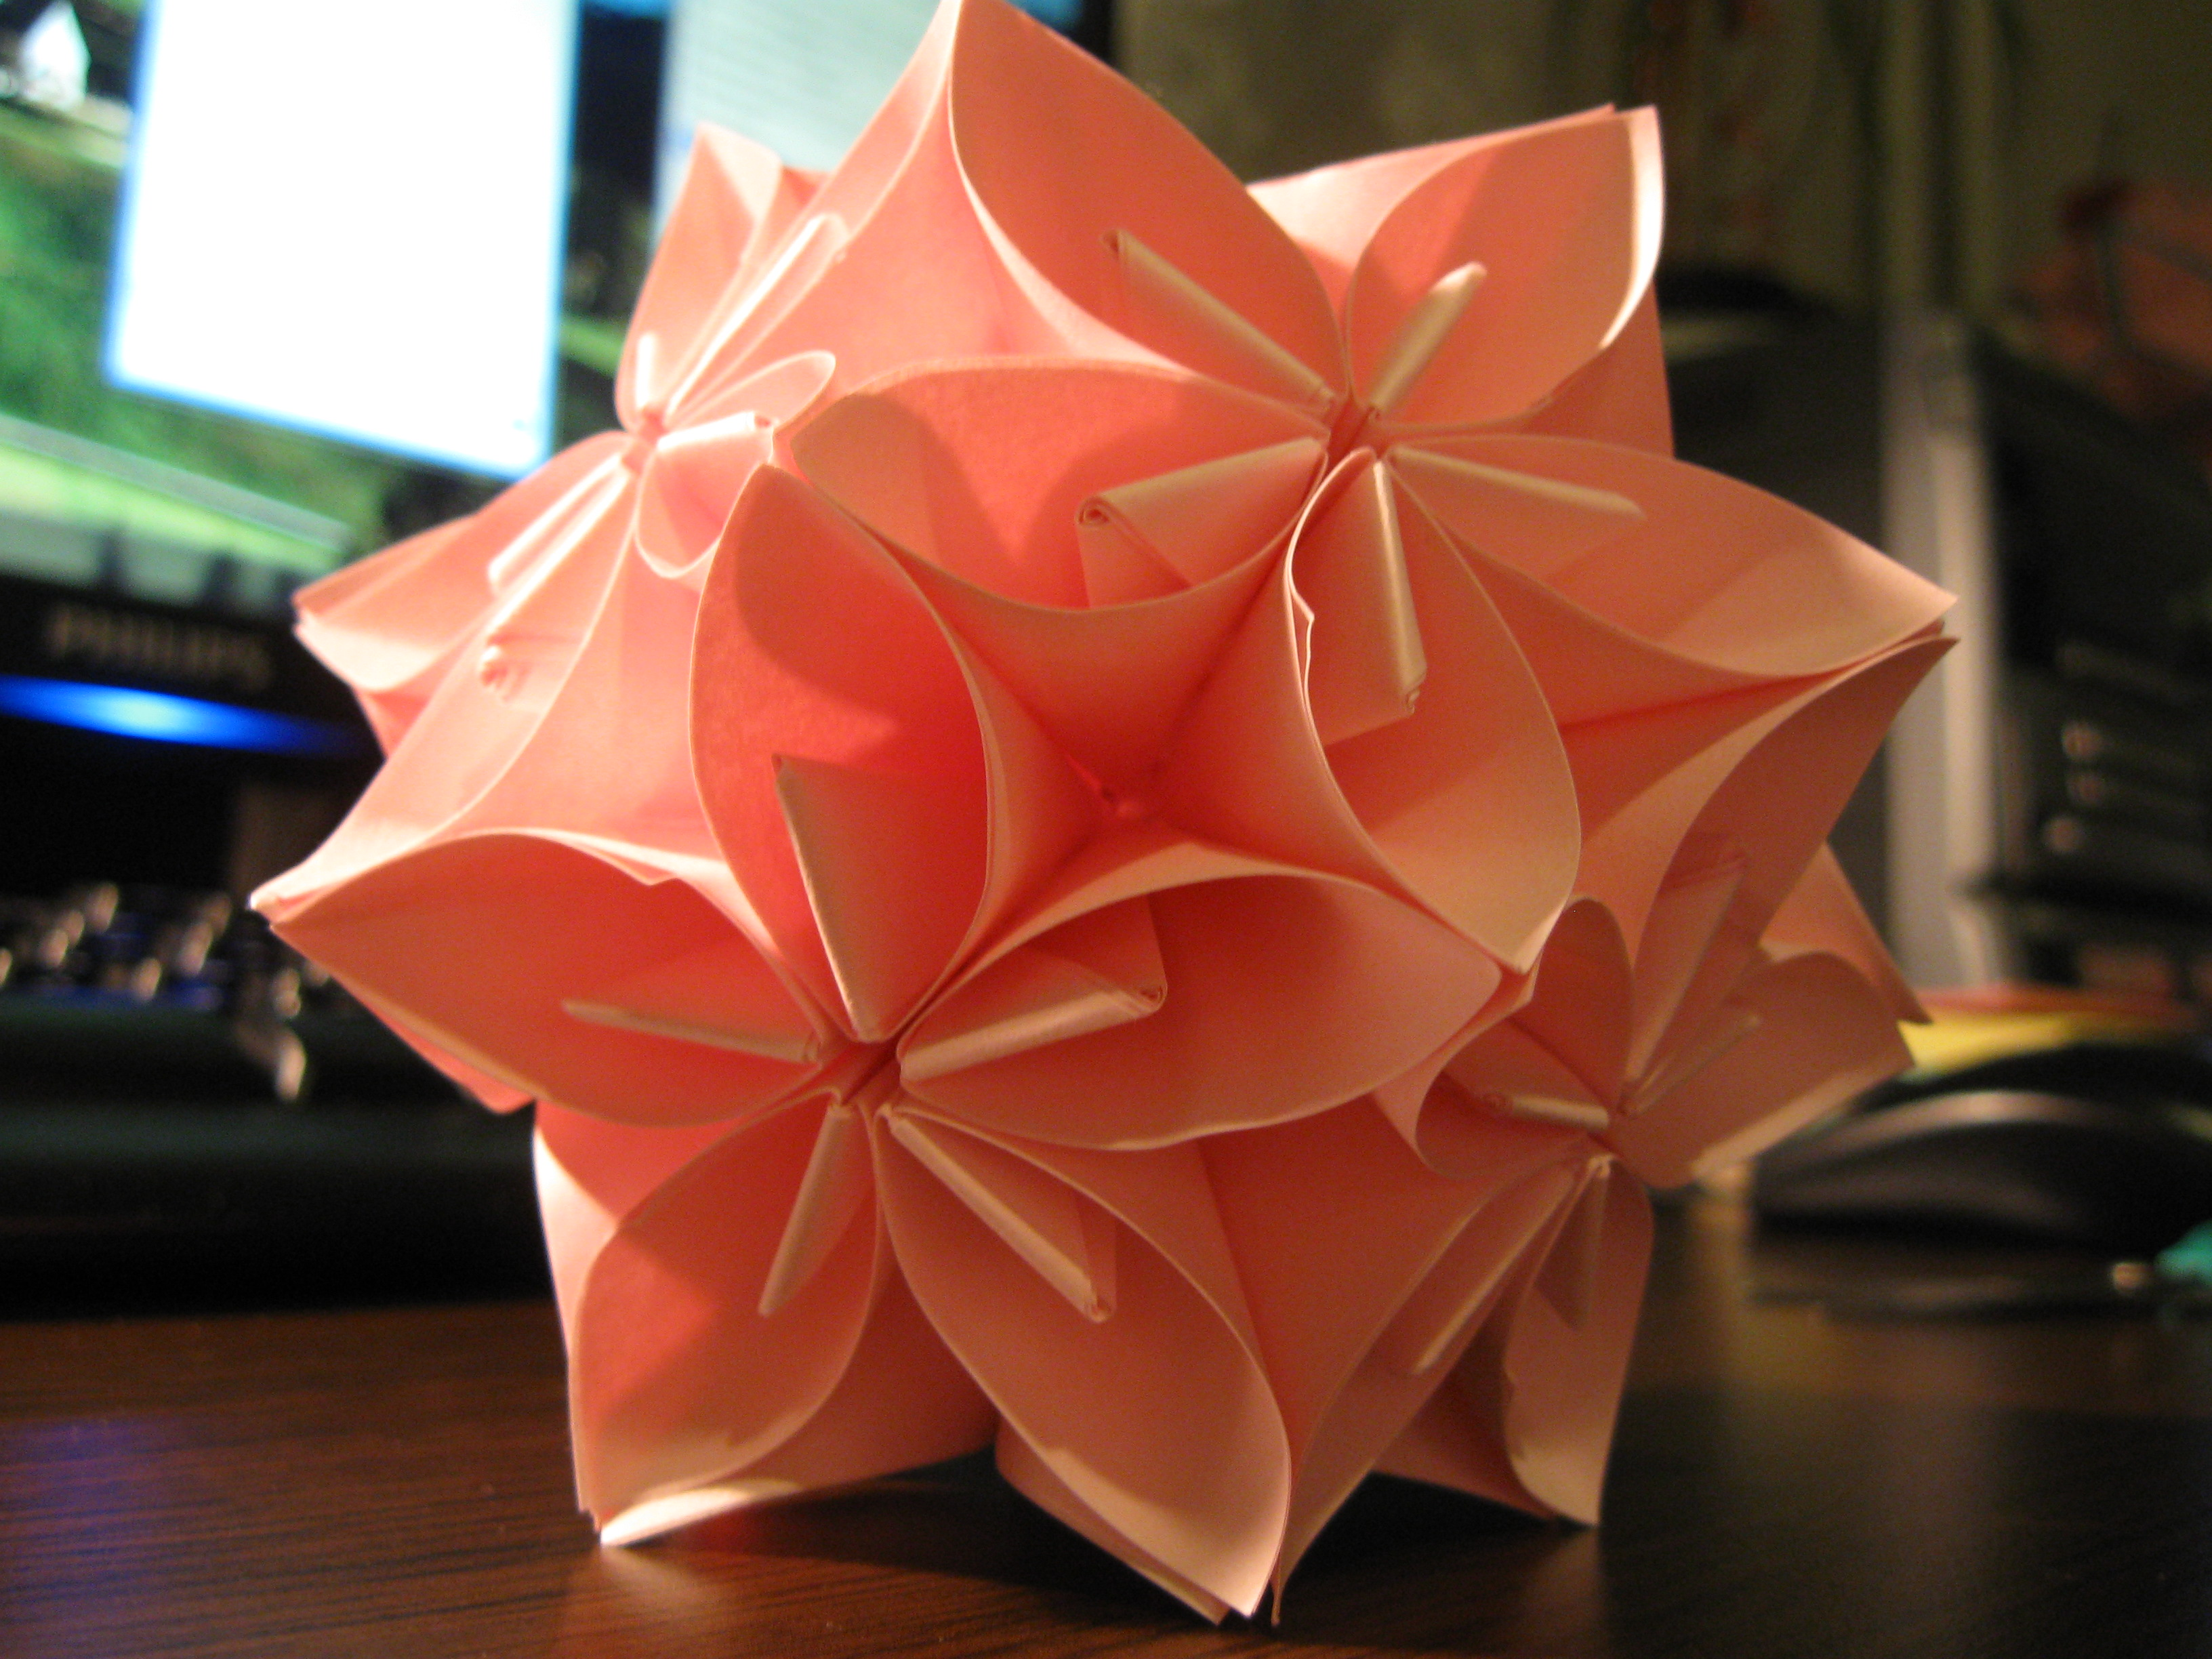 Flower origami ball 5 steps with pictures picture of flower origami ball mightylinksfo